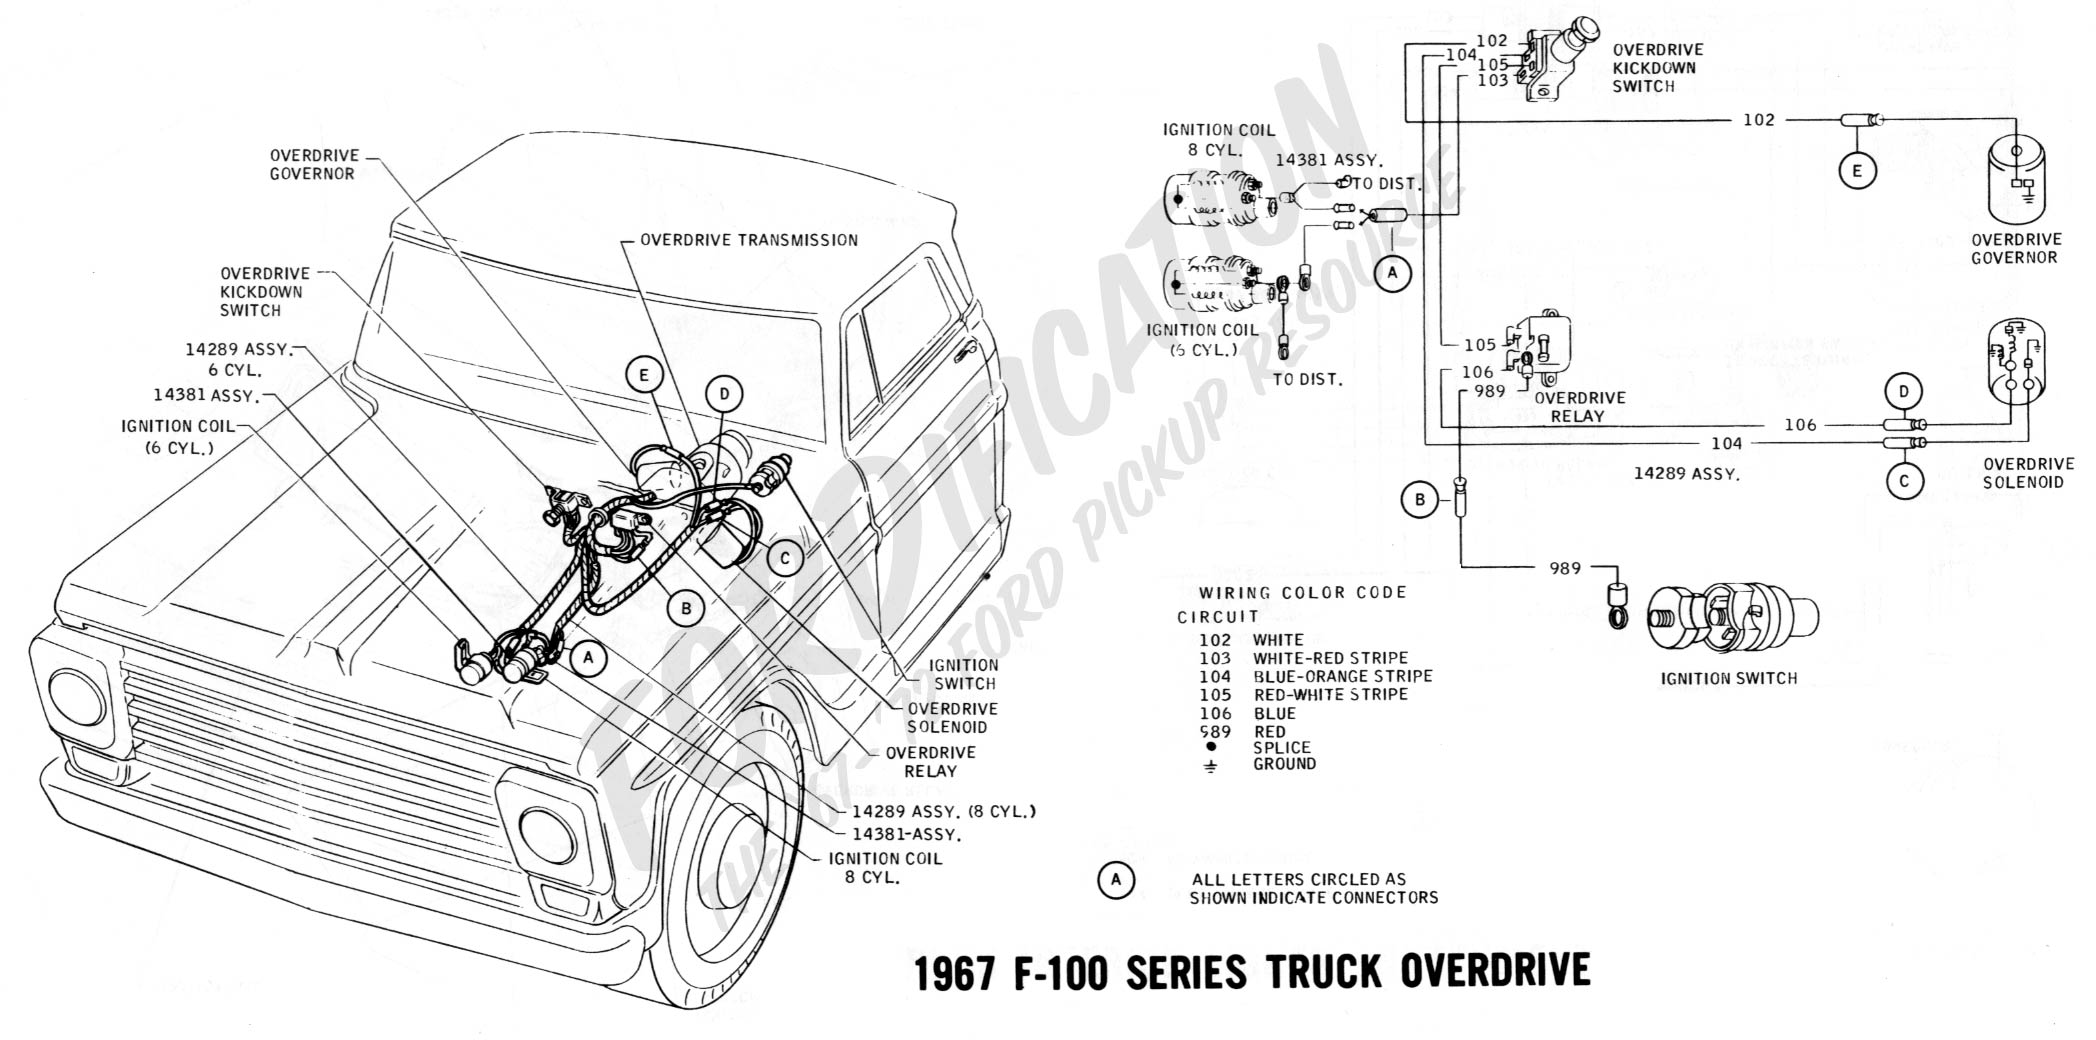 67 chevy fuse box wiring library 1980 chevy truck fuse box ford truck technical drawings and schematics section h wiring 1965 ford f100 wiring diagram 1967 f